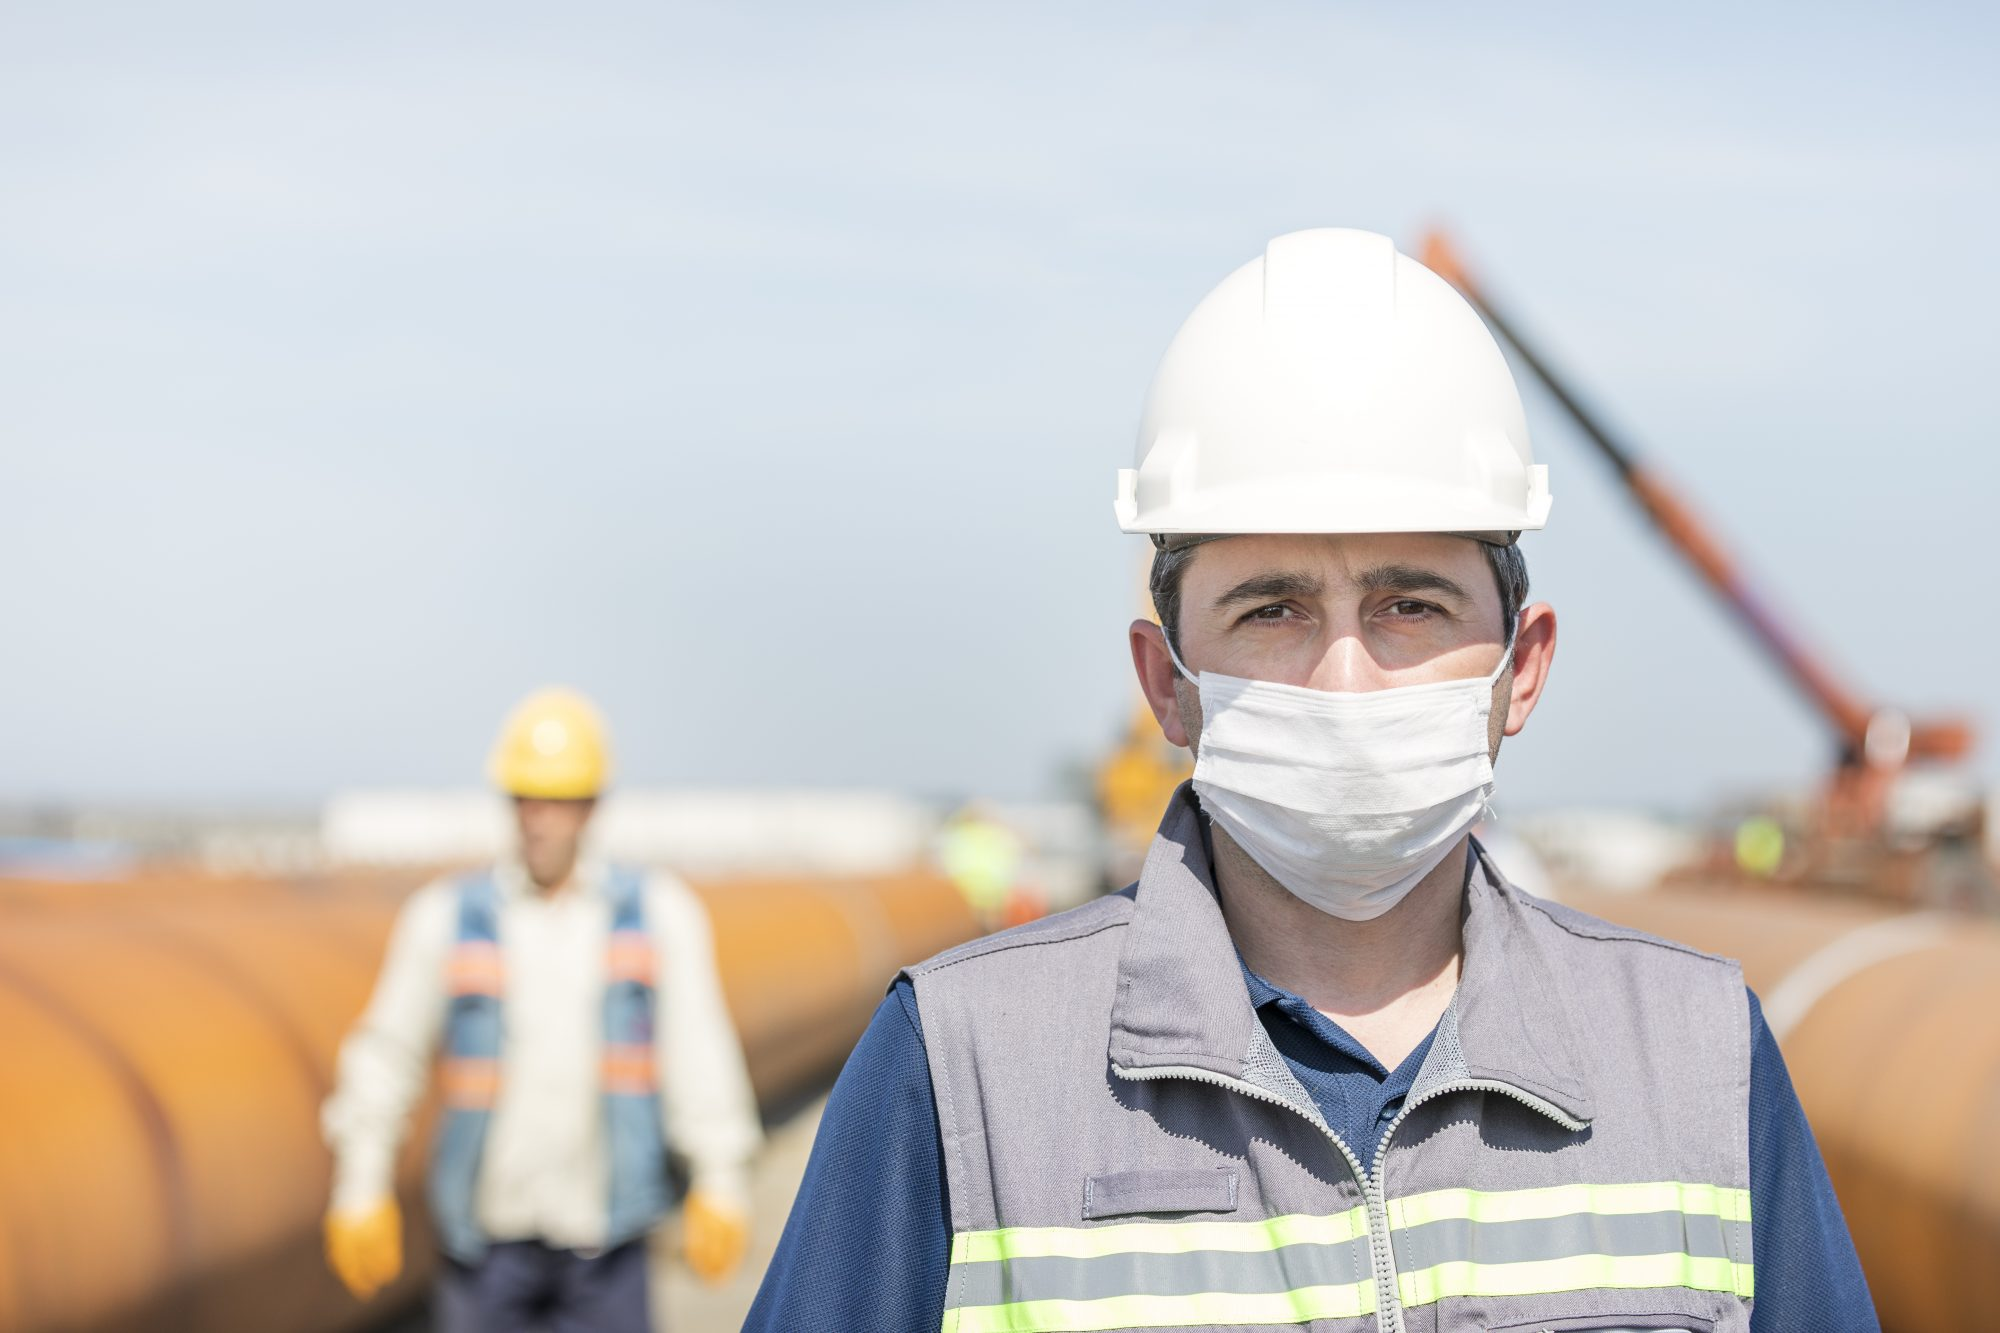 Construction industry urged to comply with safe operating guidance